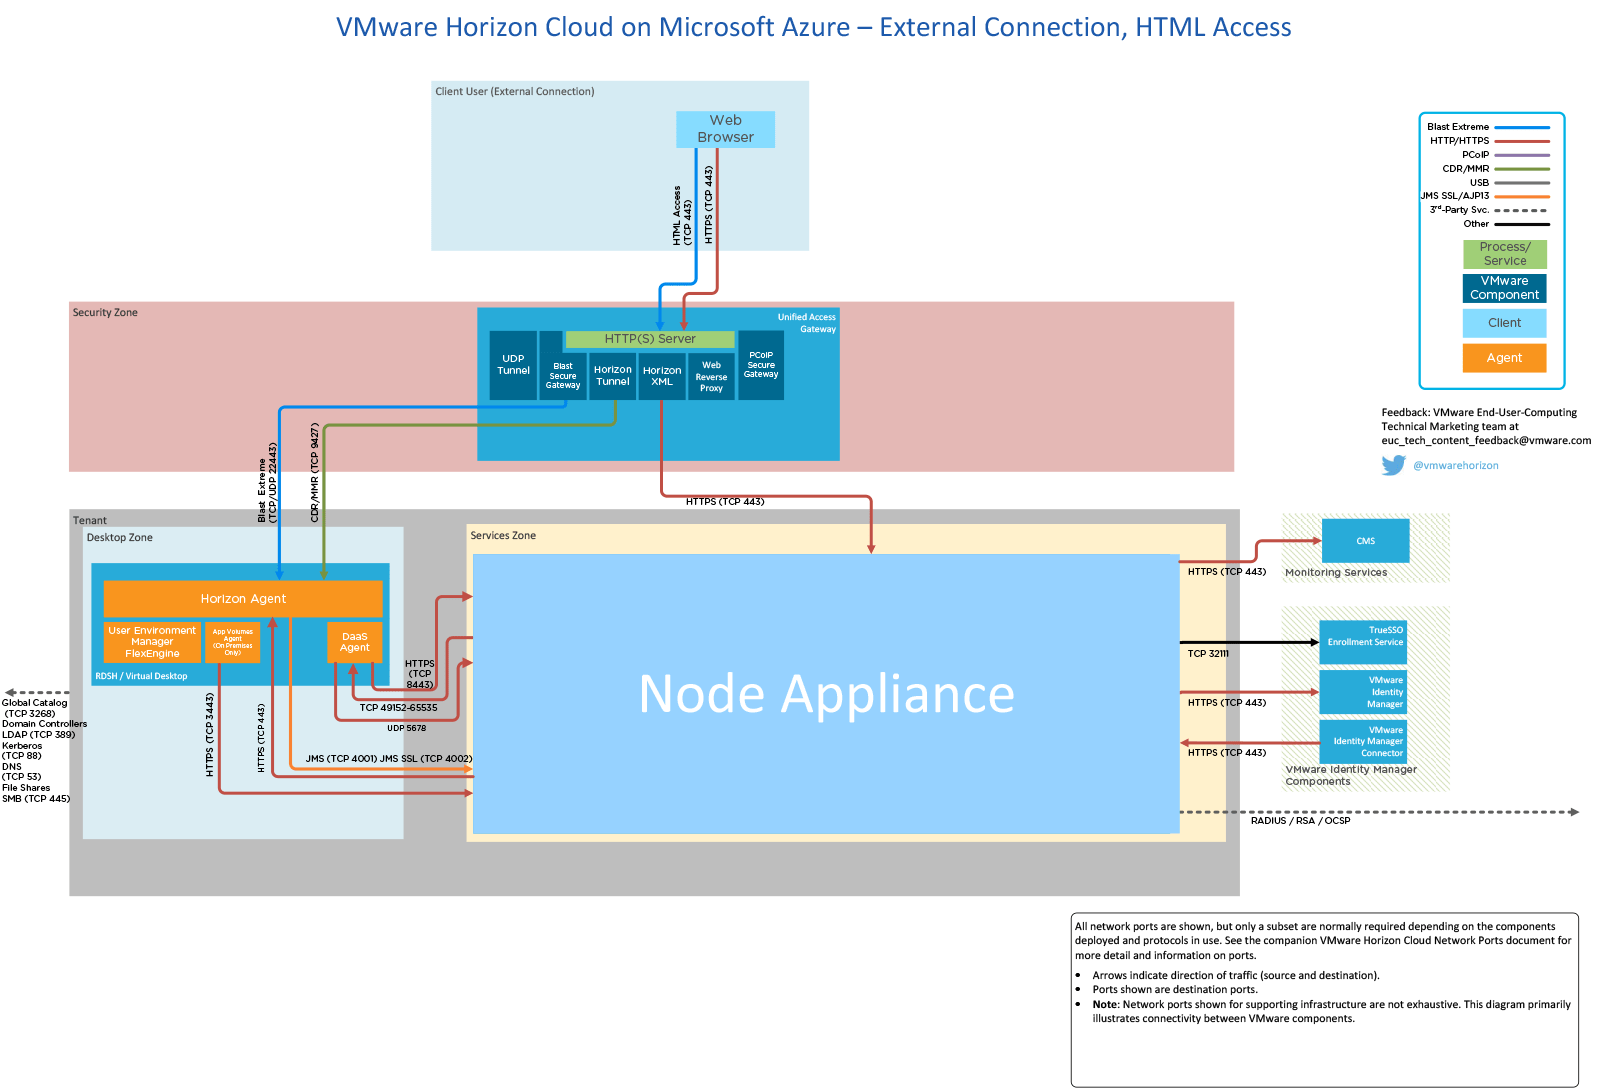 microsoft infrastructure diagram light fixture wiring network ports in vmware horizon cloud service with hosted on azure external connection html access